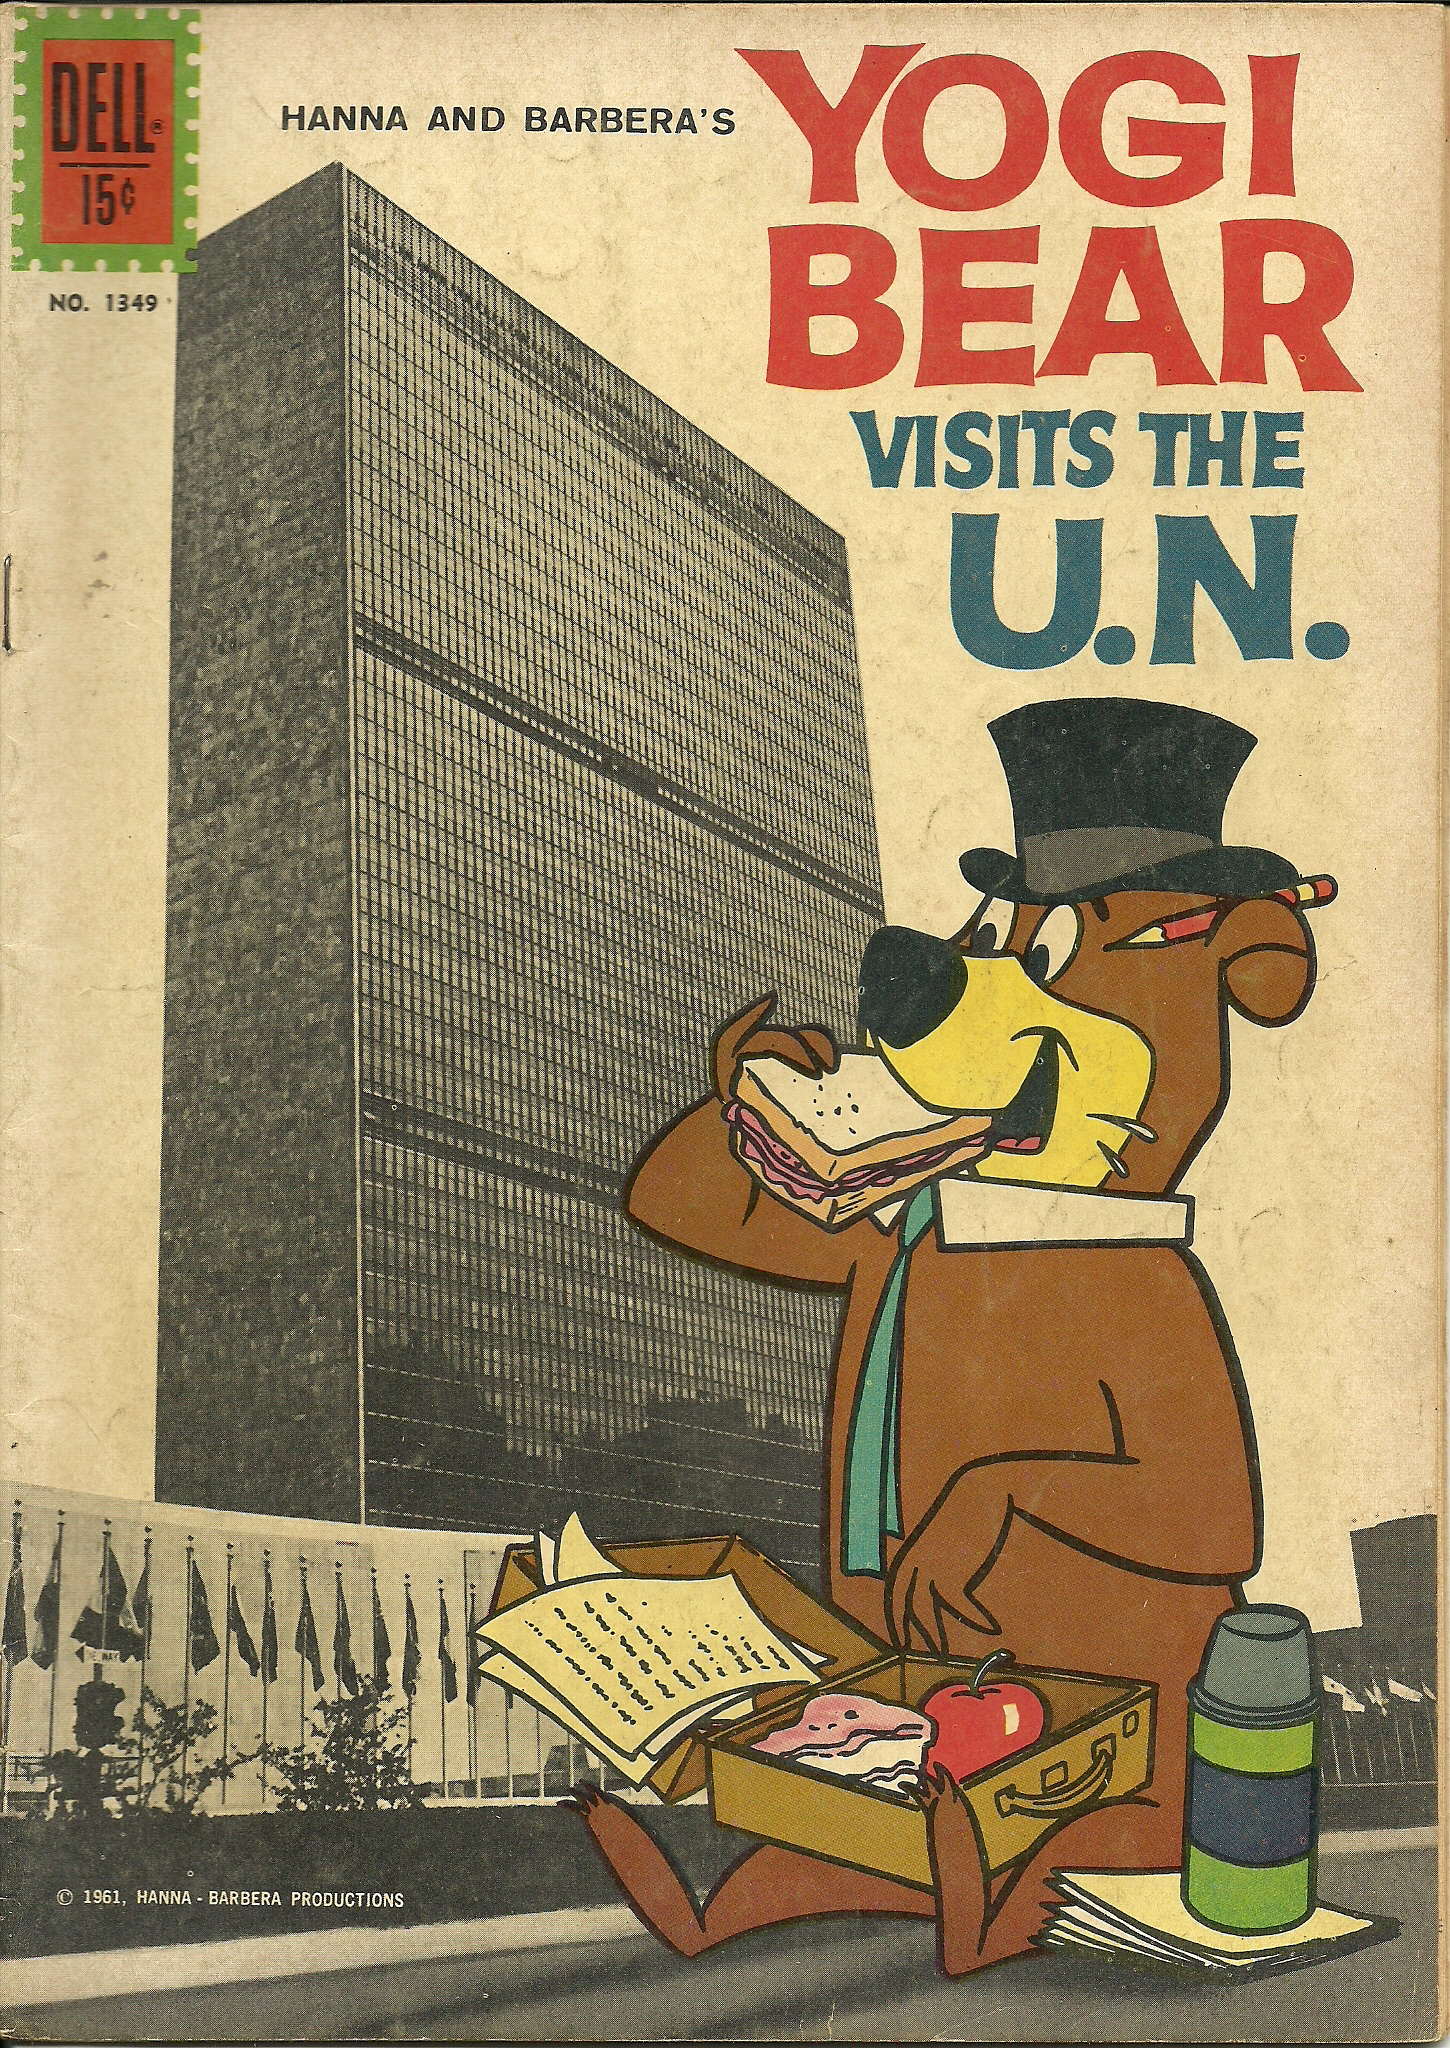 Yogi Bear Visits the U.N., No. 1349, 1961. In good condition. All ...